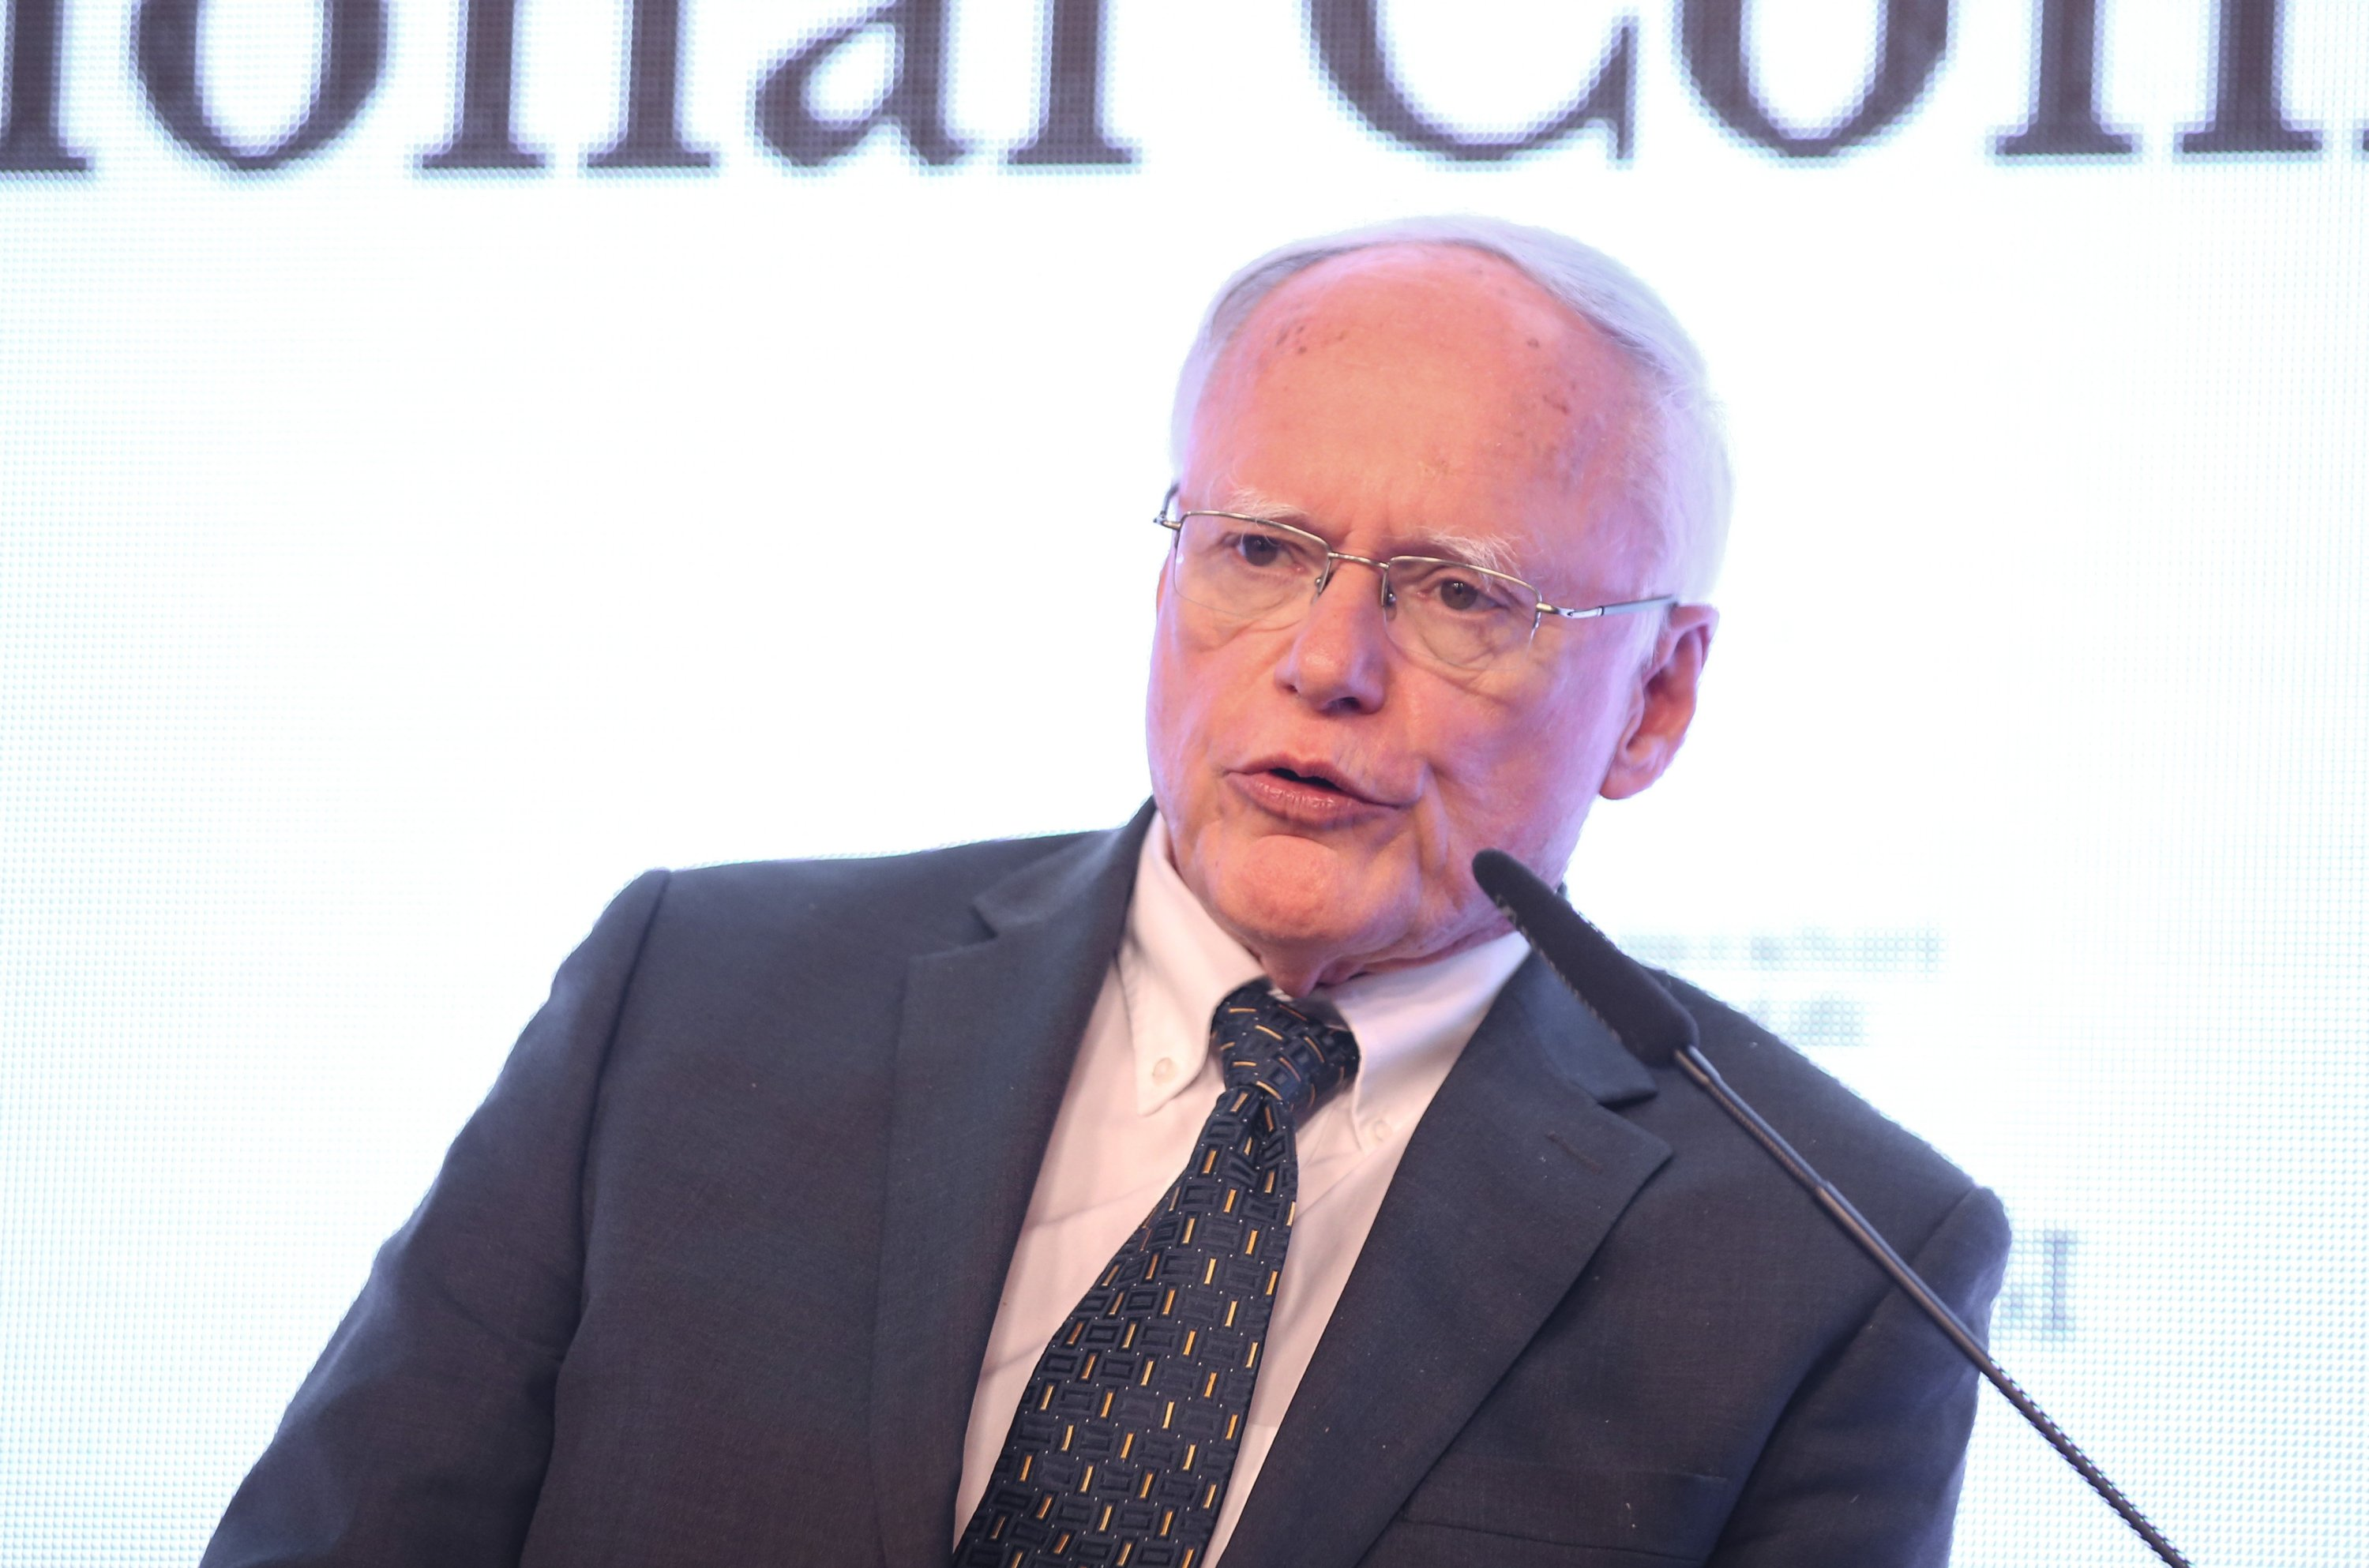 James Jeffrey, the former U.S. special envoy for Syria, speaks during a conference in Istanbul, Turkey, March 6, 2020. (AA Photo)